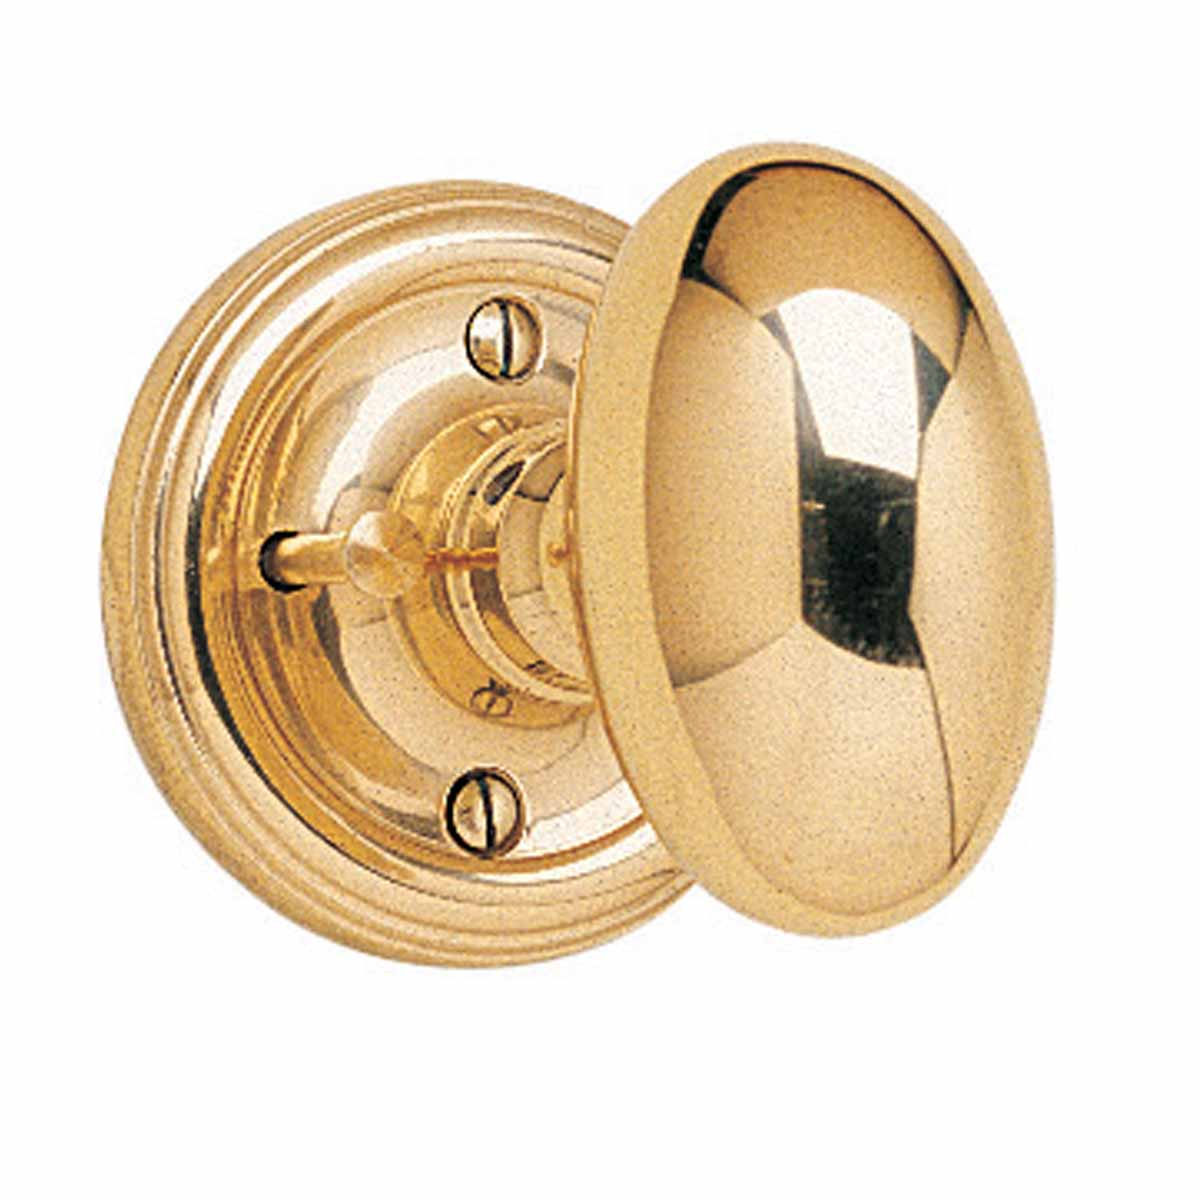 ... U003cPREu003ePrivacy Door Knob Set Oval Solid Brass 2 3/8u0027u0027 ...